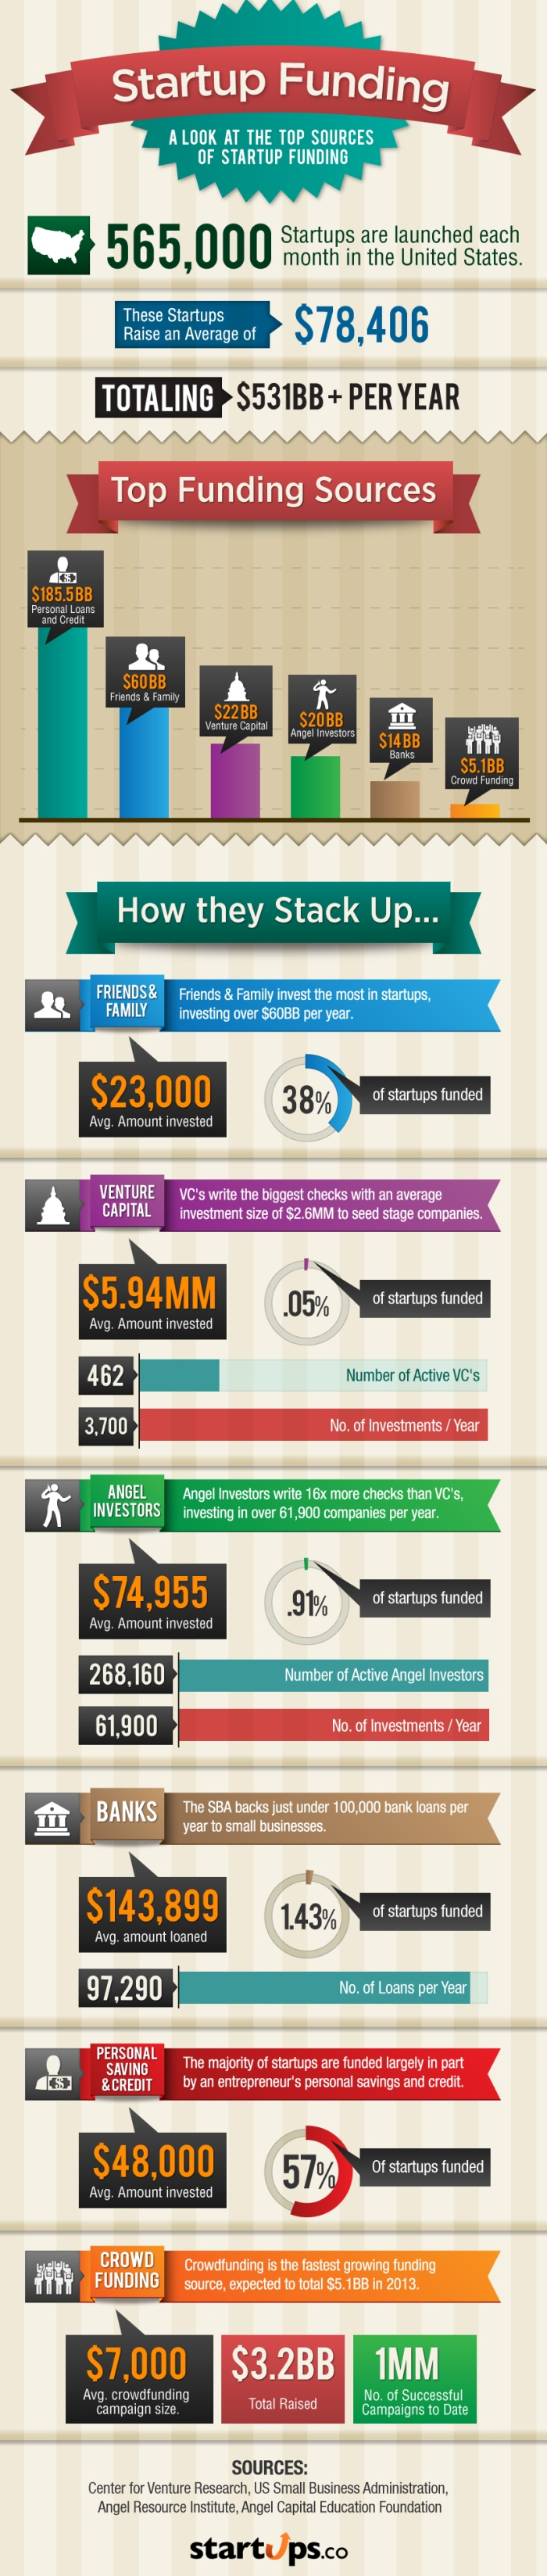 Some start up funding statistics in the United States